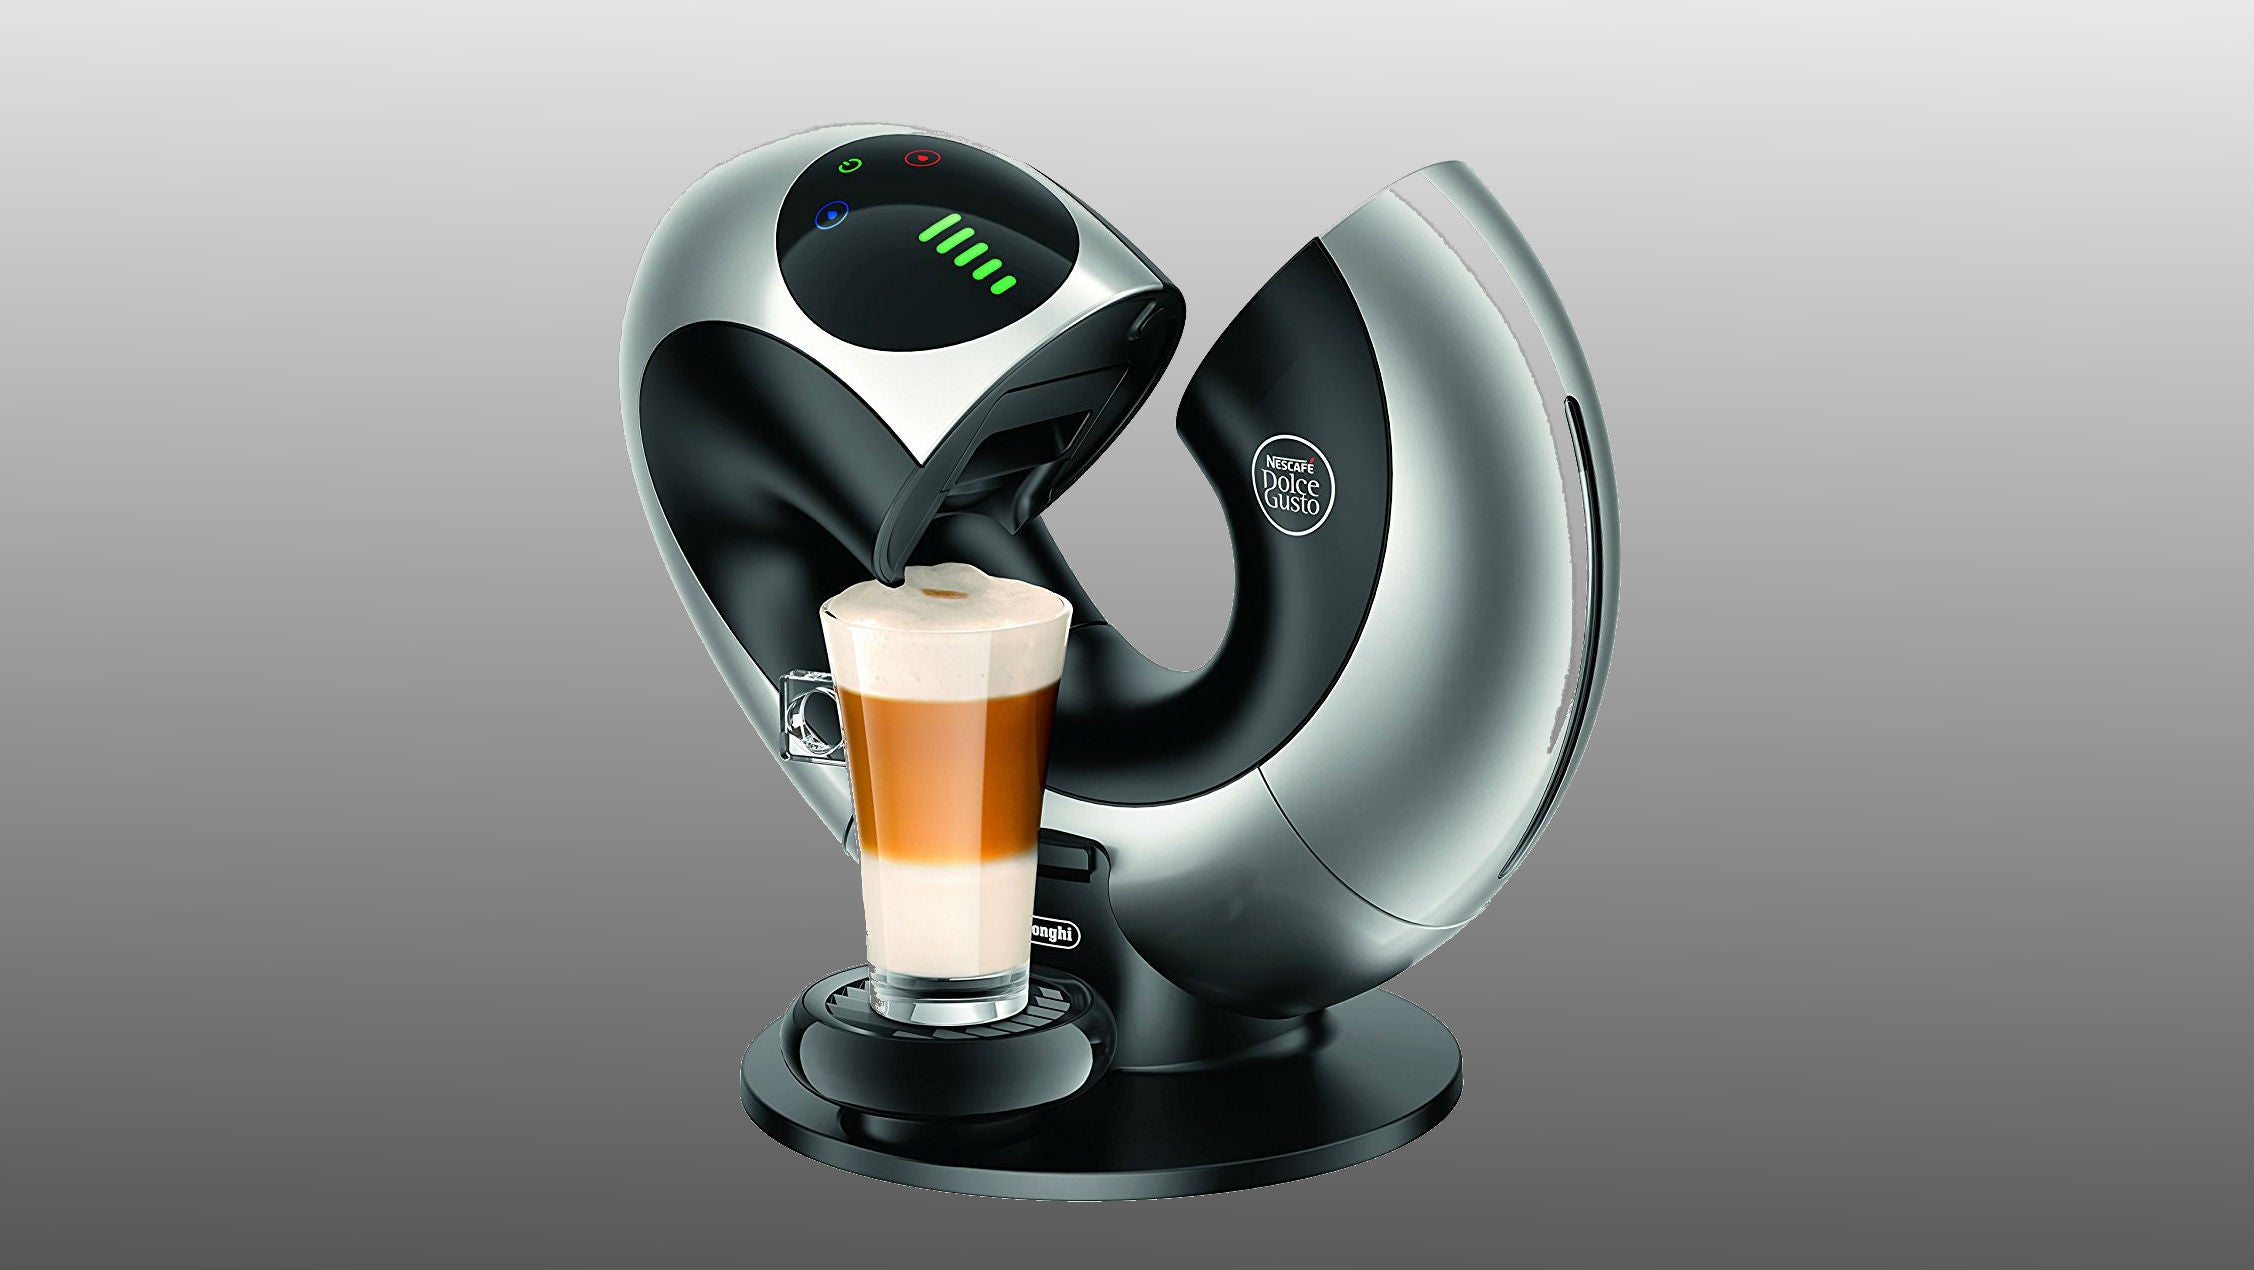 nescafe dolce gusto eclipse by de longhi review trusted. Black Bedroom Furniture Sets. Home Design Ideas